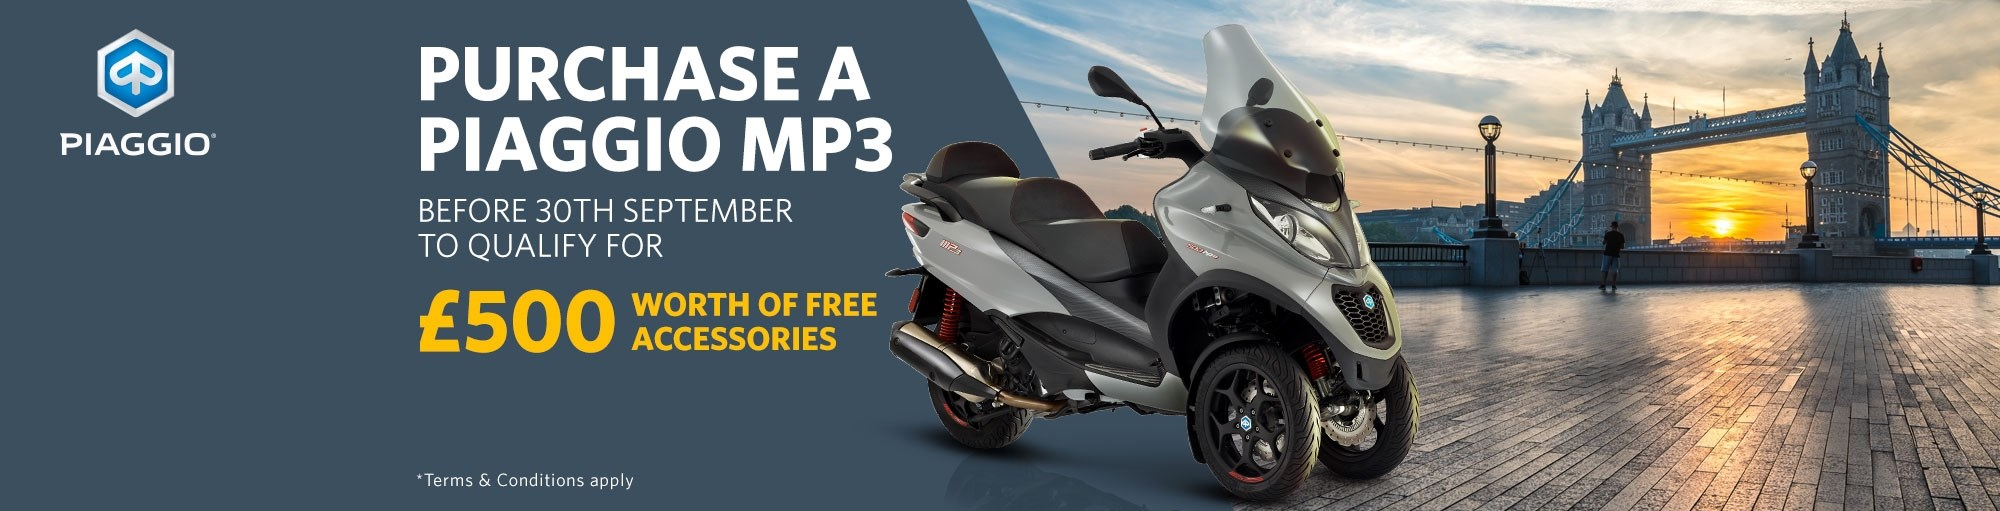 Buy a new Piaggio MP3 and get £500 worth of free accessories